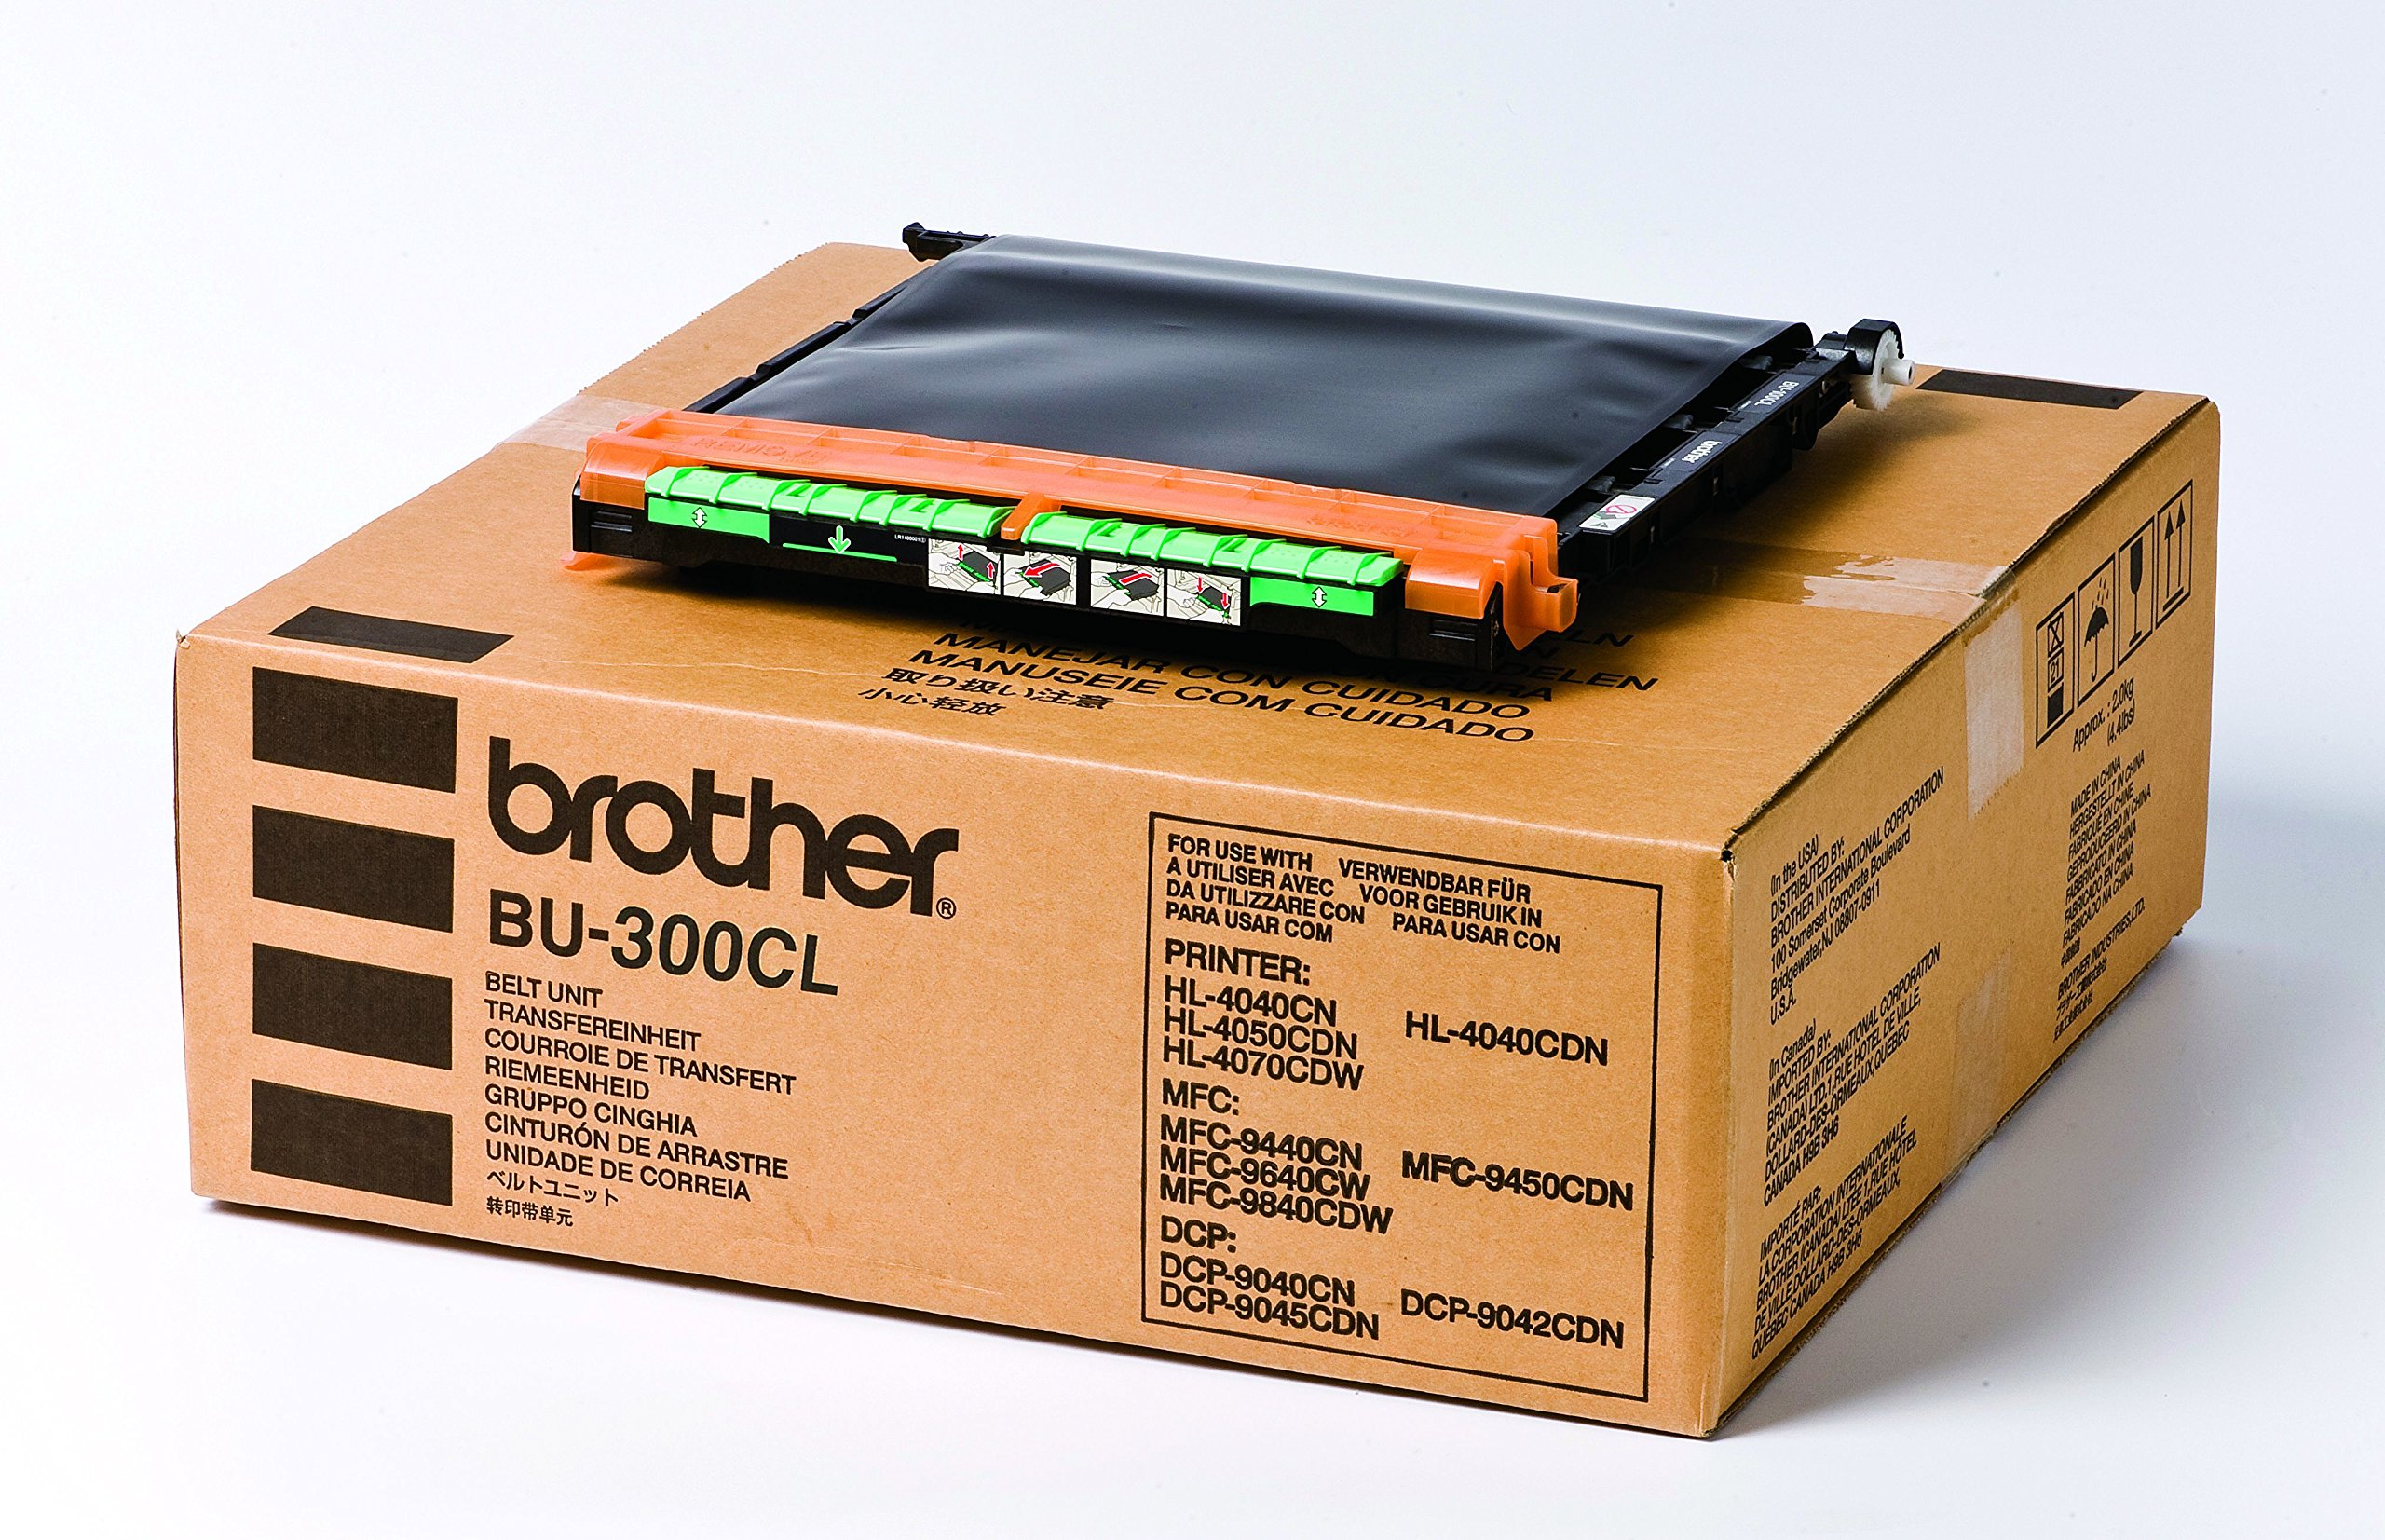 Brother BU300CL Belt Unit - Retail Packaging by Brother